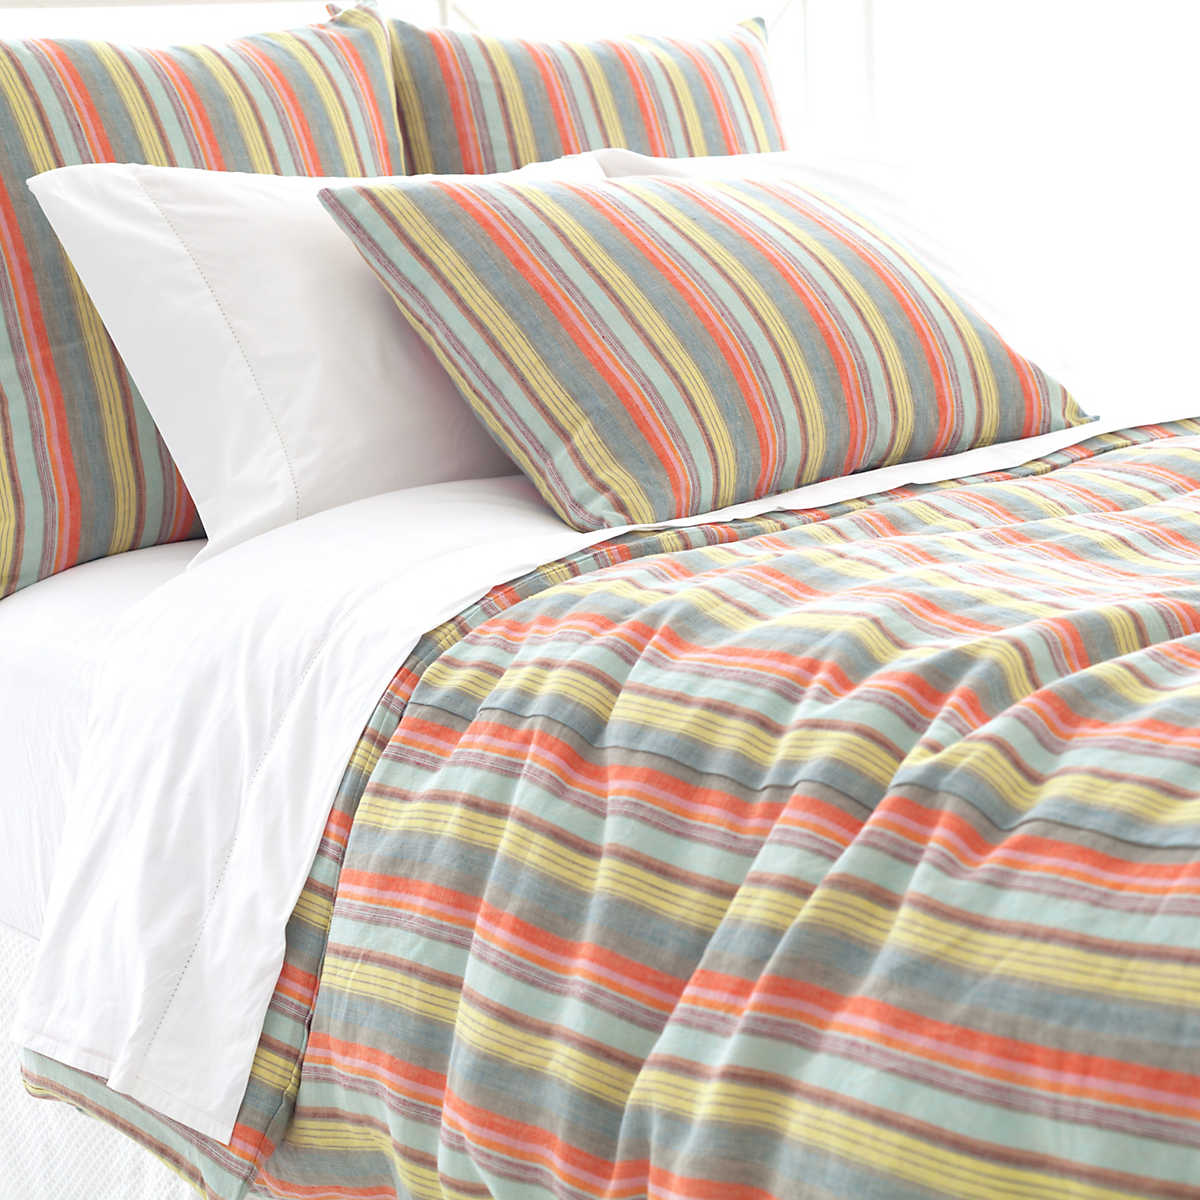 ke white from jumia kenya green with bedsheet pillow pillo striped generic and product en price duvet cover covers